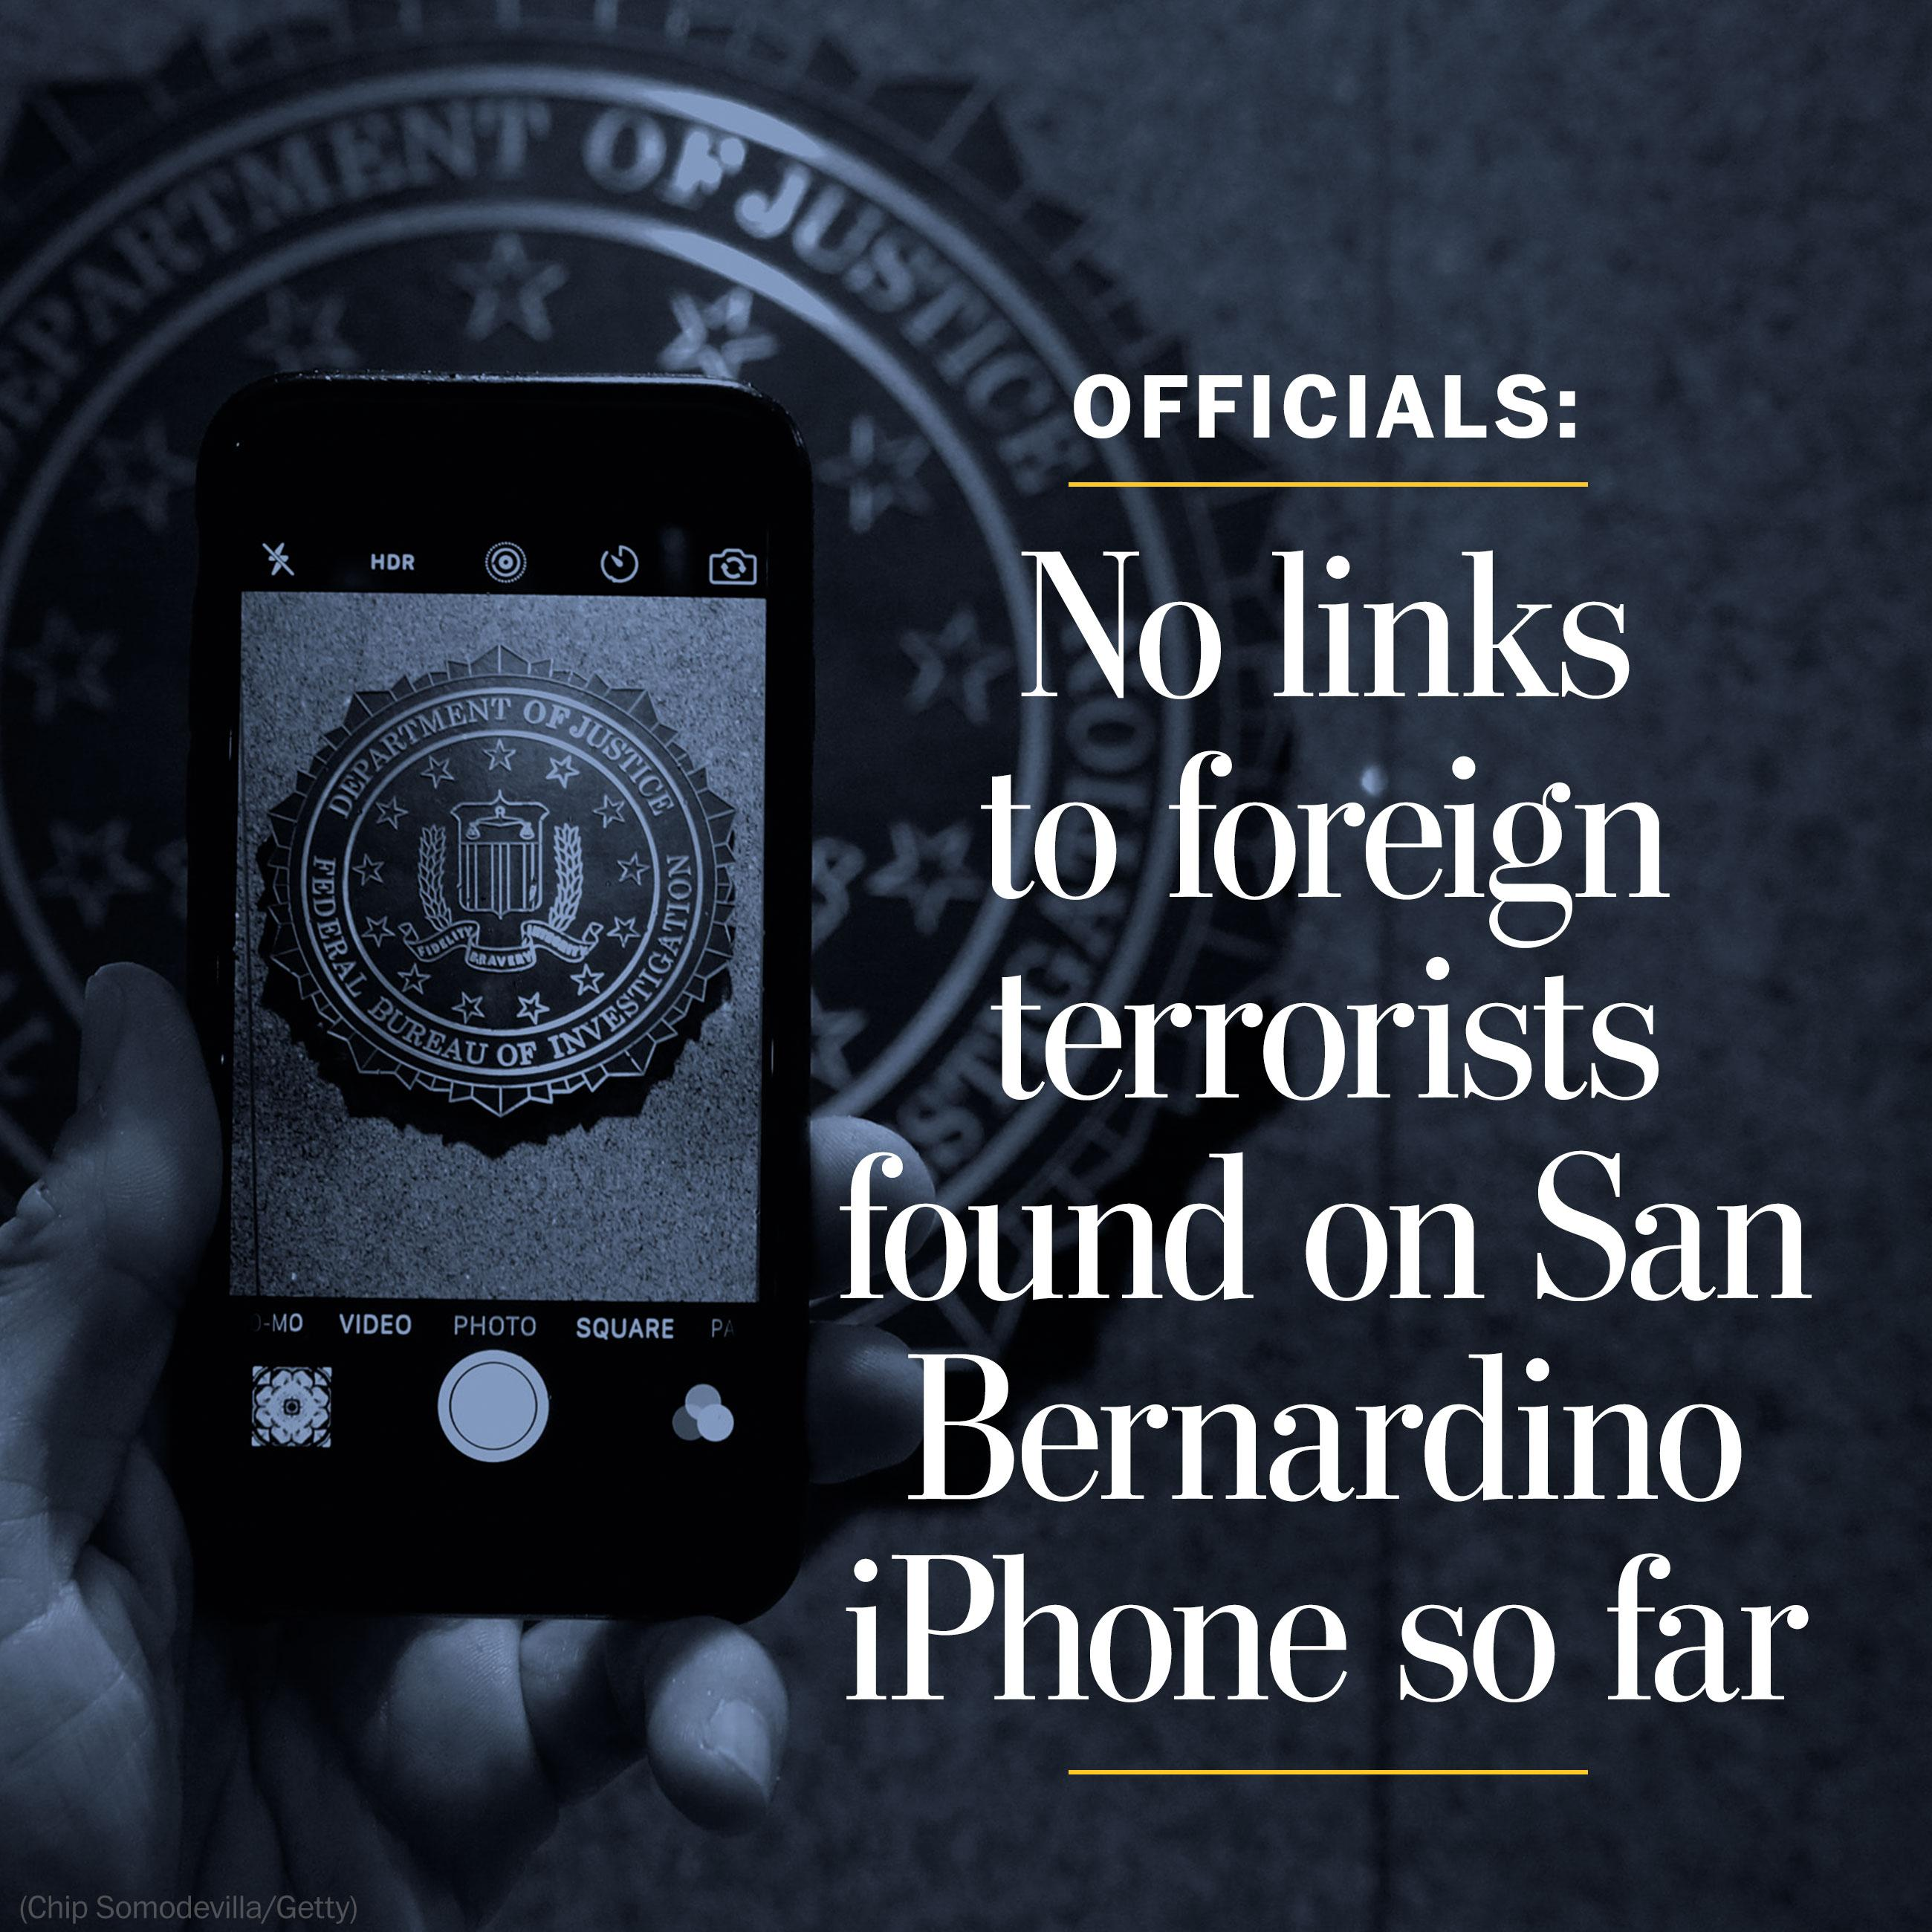 No links to foreign terrorists found on San Bernardino iPhone so far, officials say